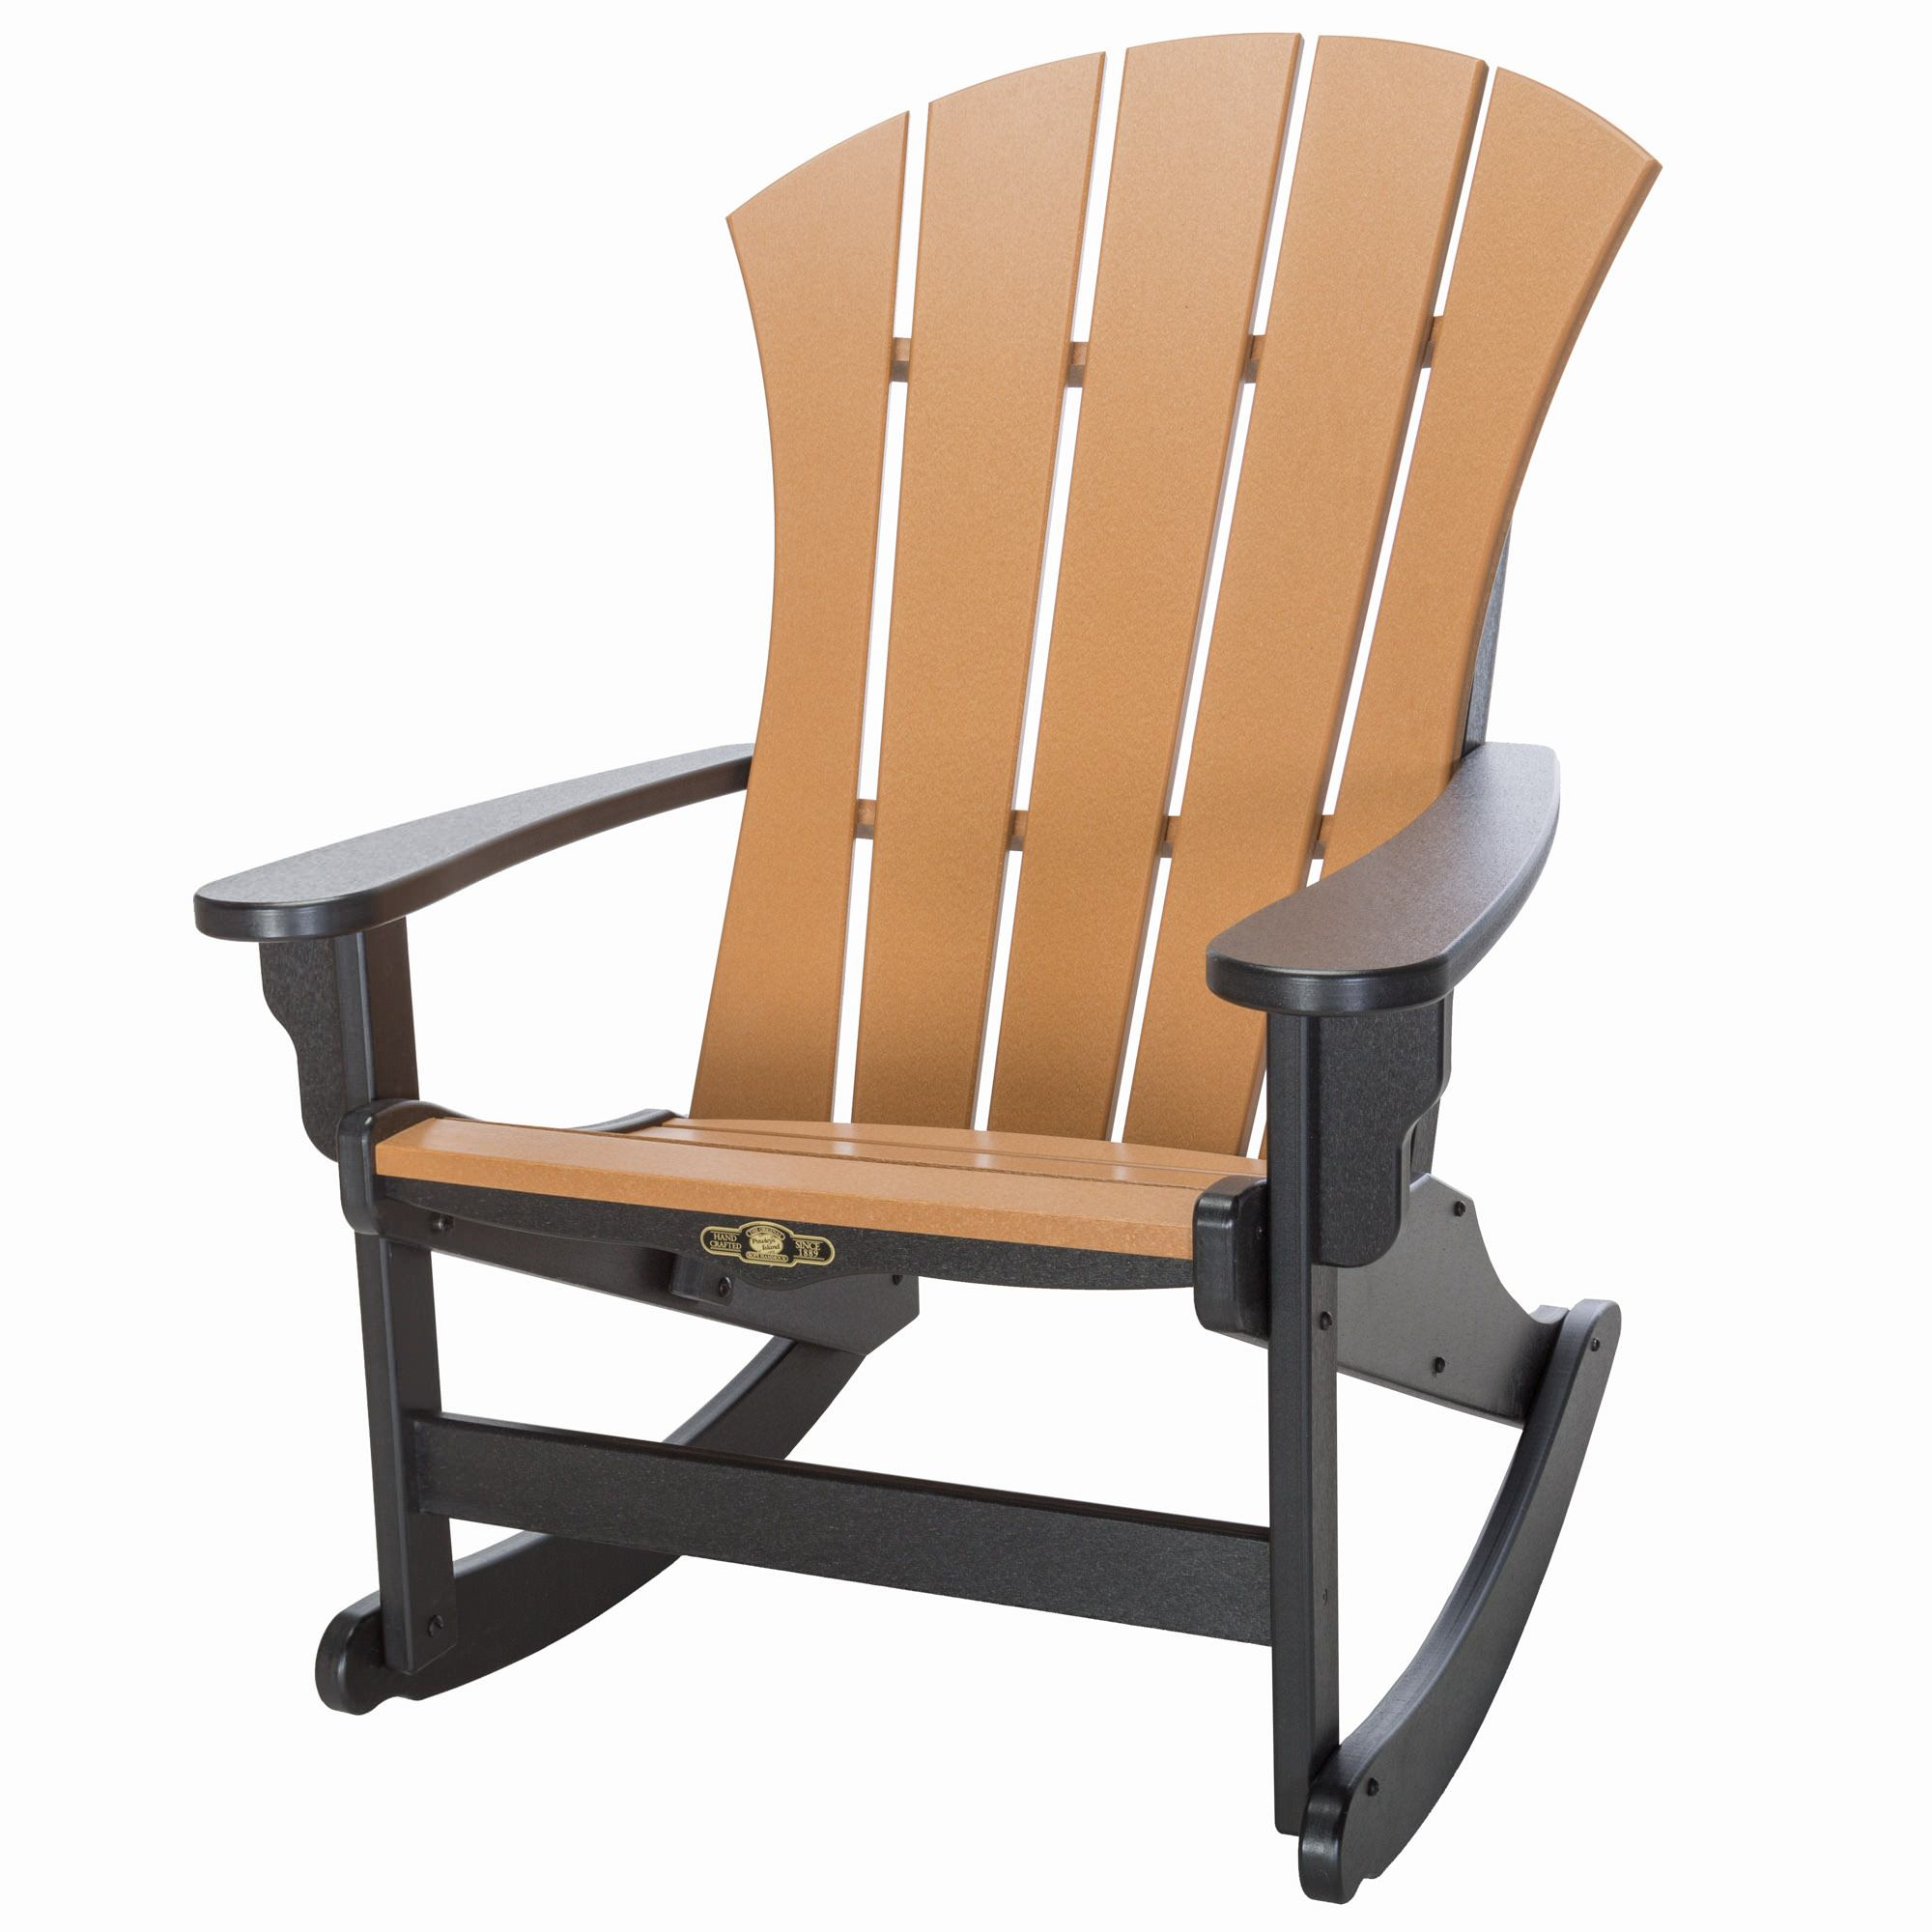 home modern adirondack easylovely with rocking resin gallery remodel designing chair about inspiration